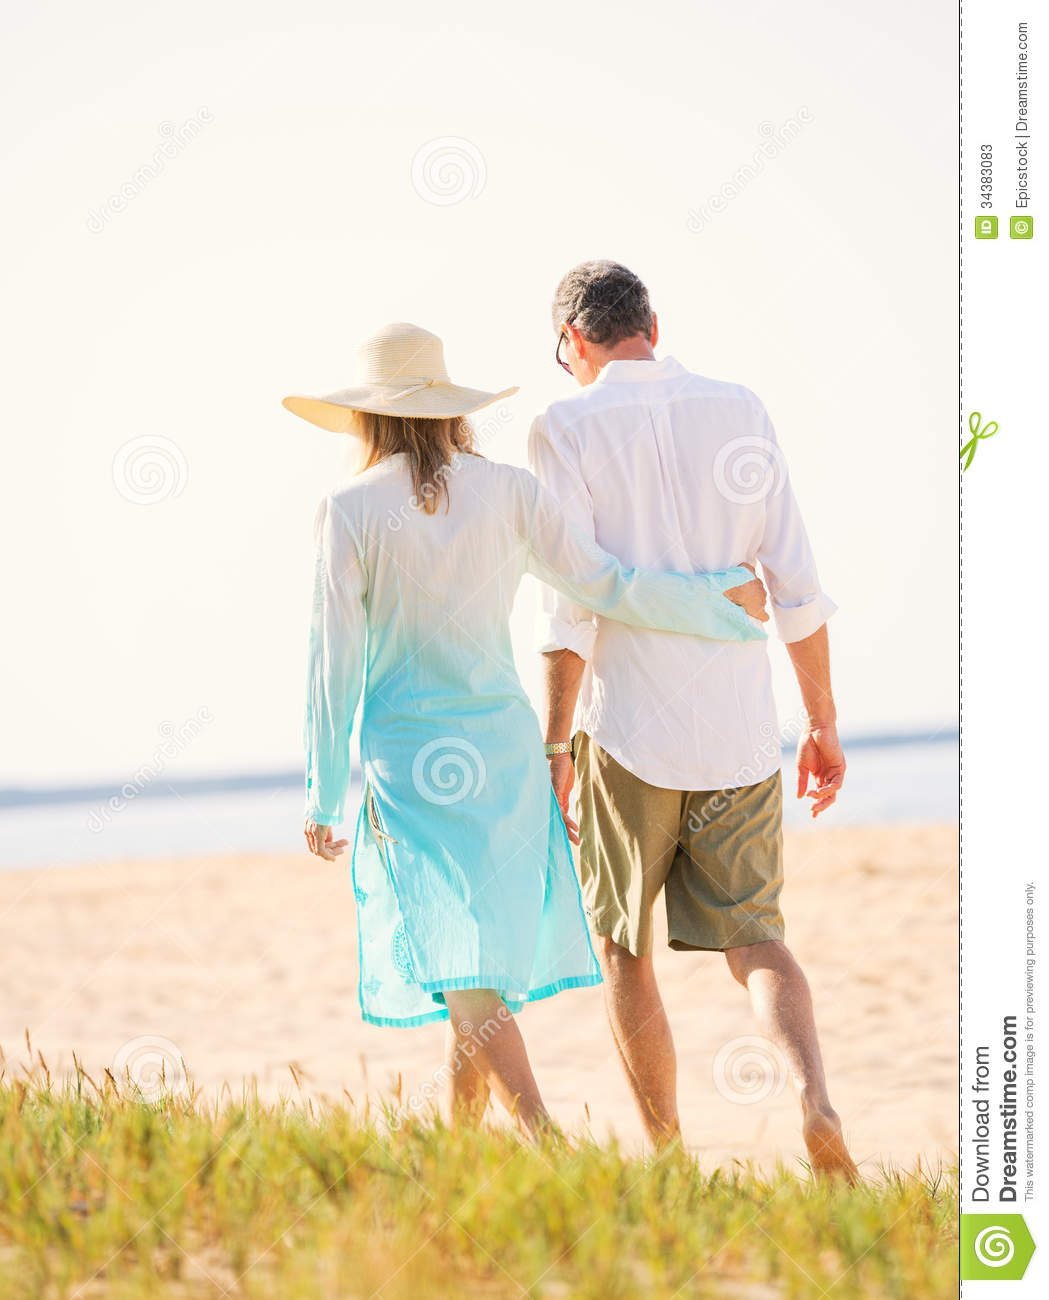 Old Age Couple Quotes: Romantic Middle Age Quotes. QuotesGram